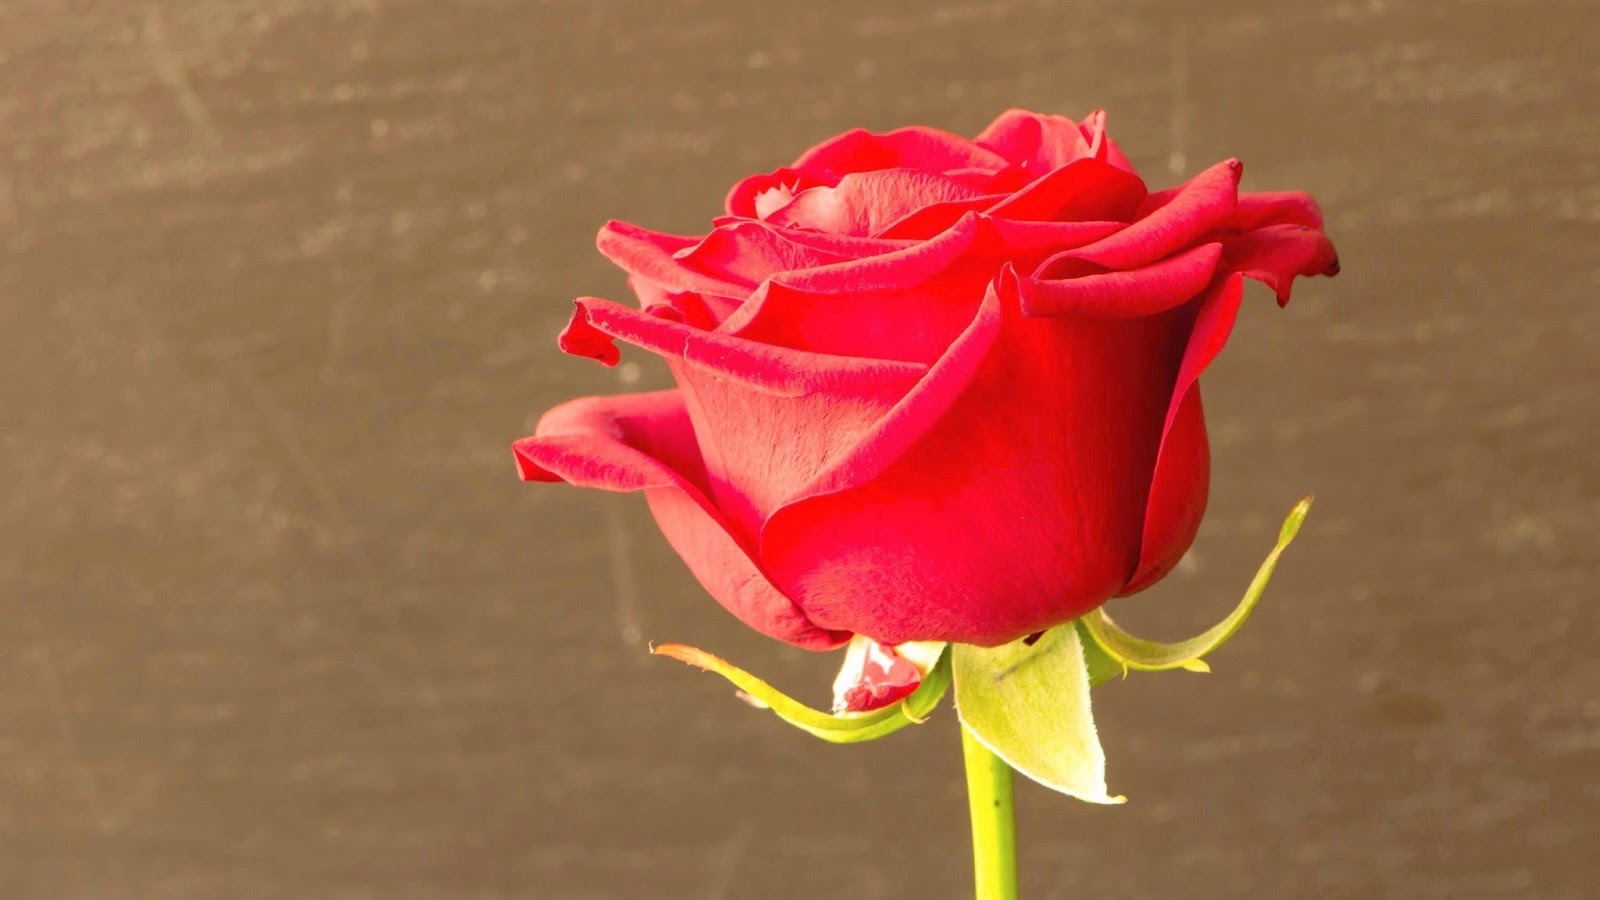 rose wallpapers best - photo #15